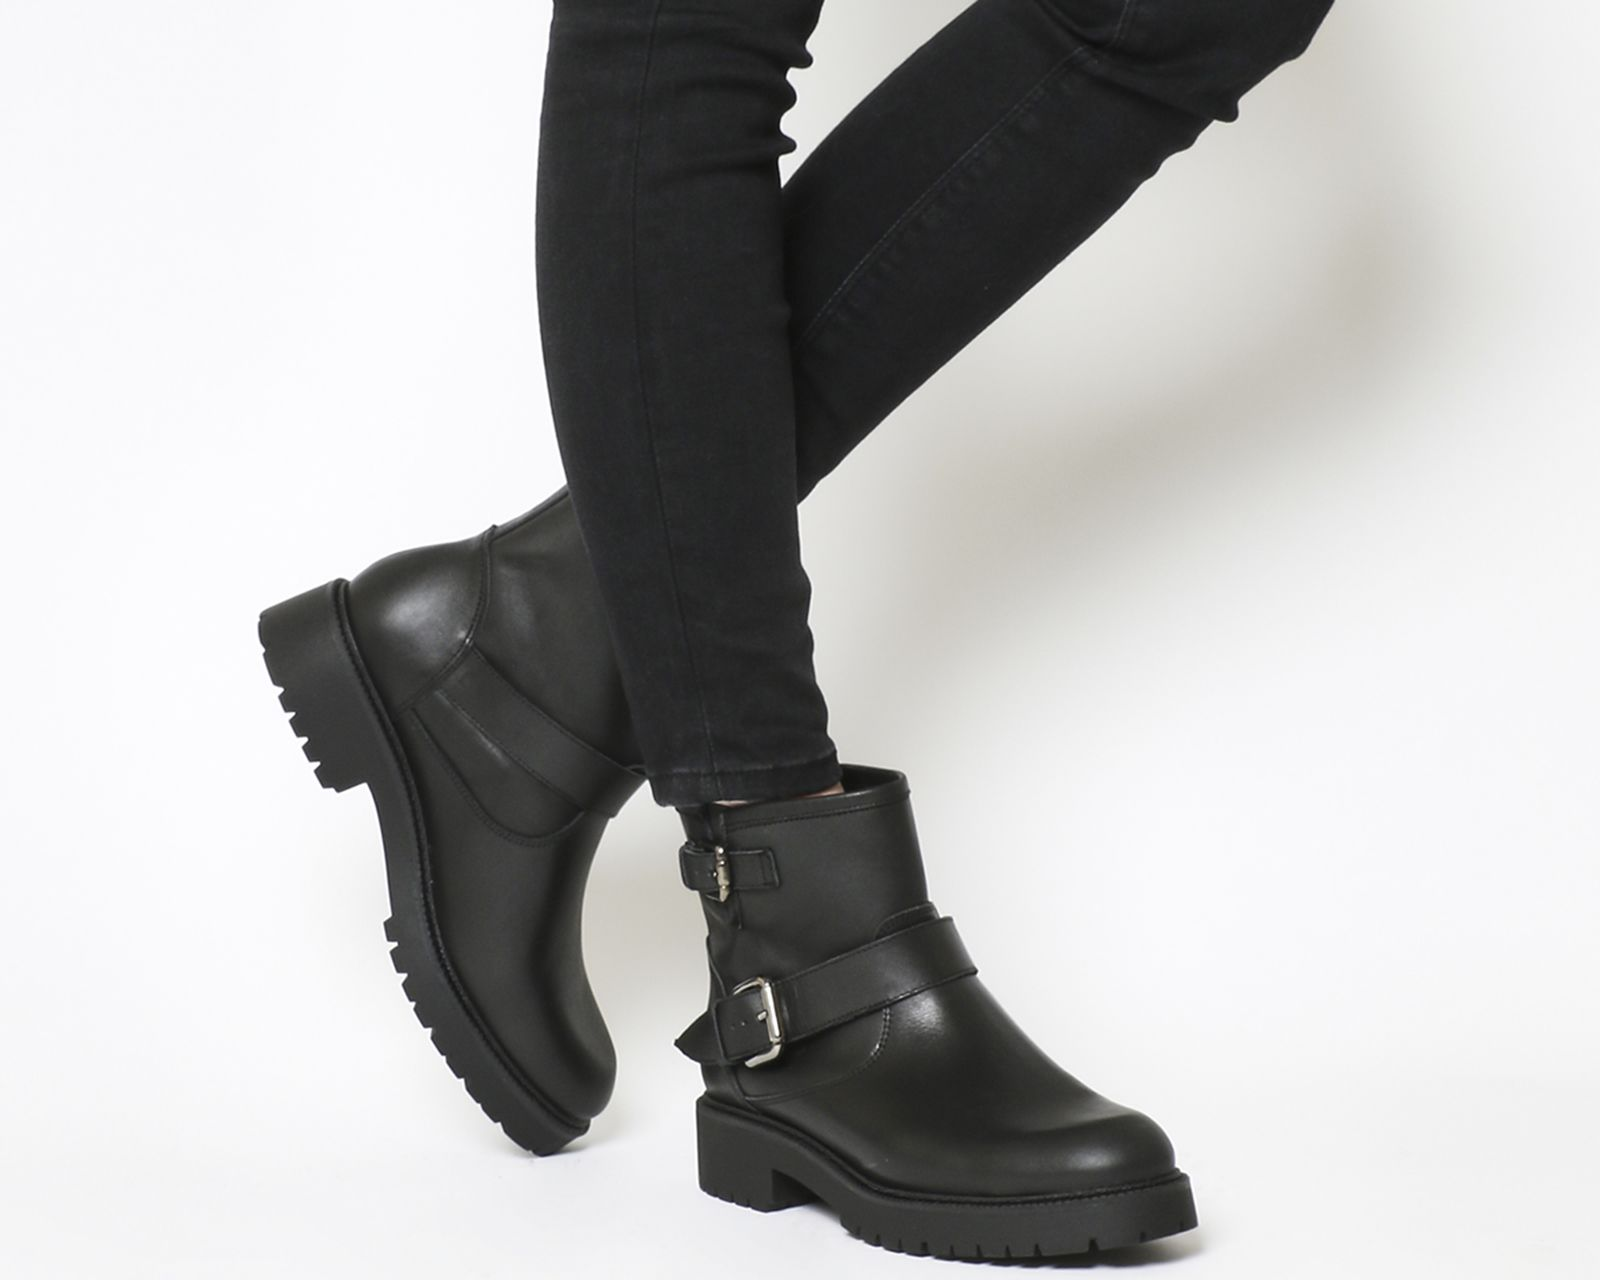 Boots, Biker boots, Black leather boots